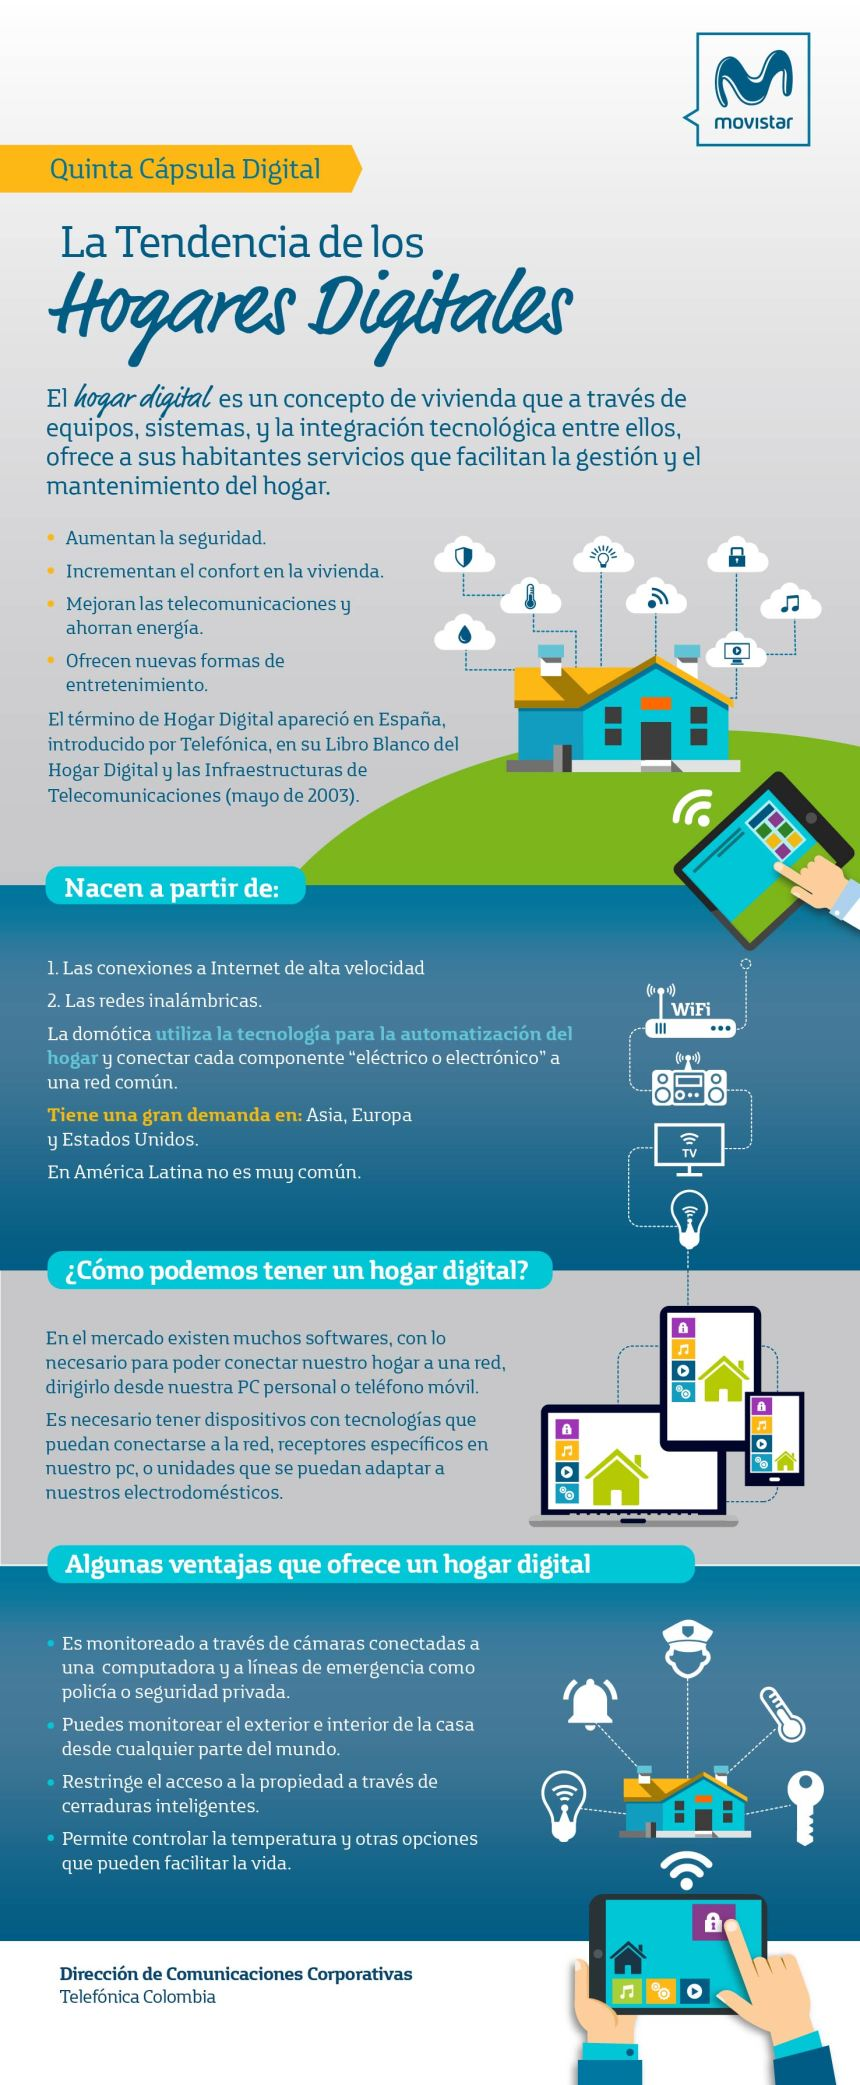 Tendencias en Hogares Digitales